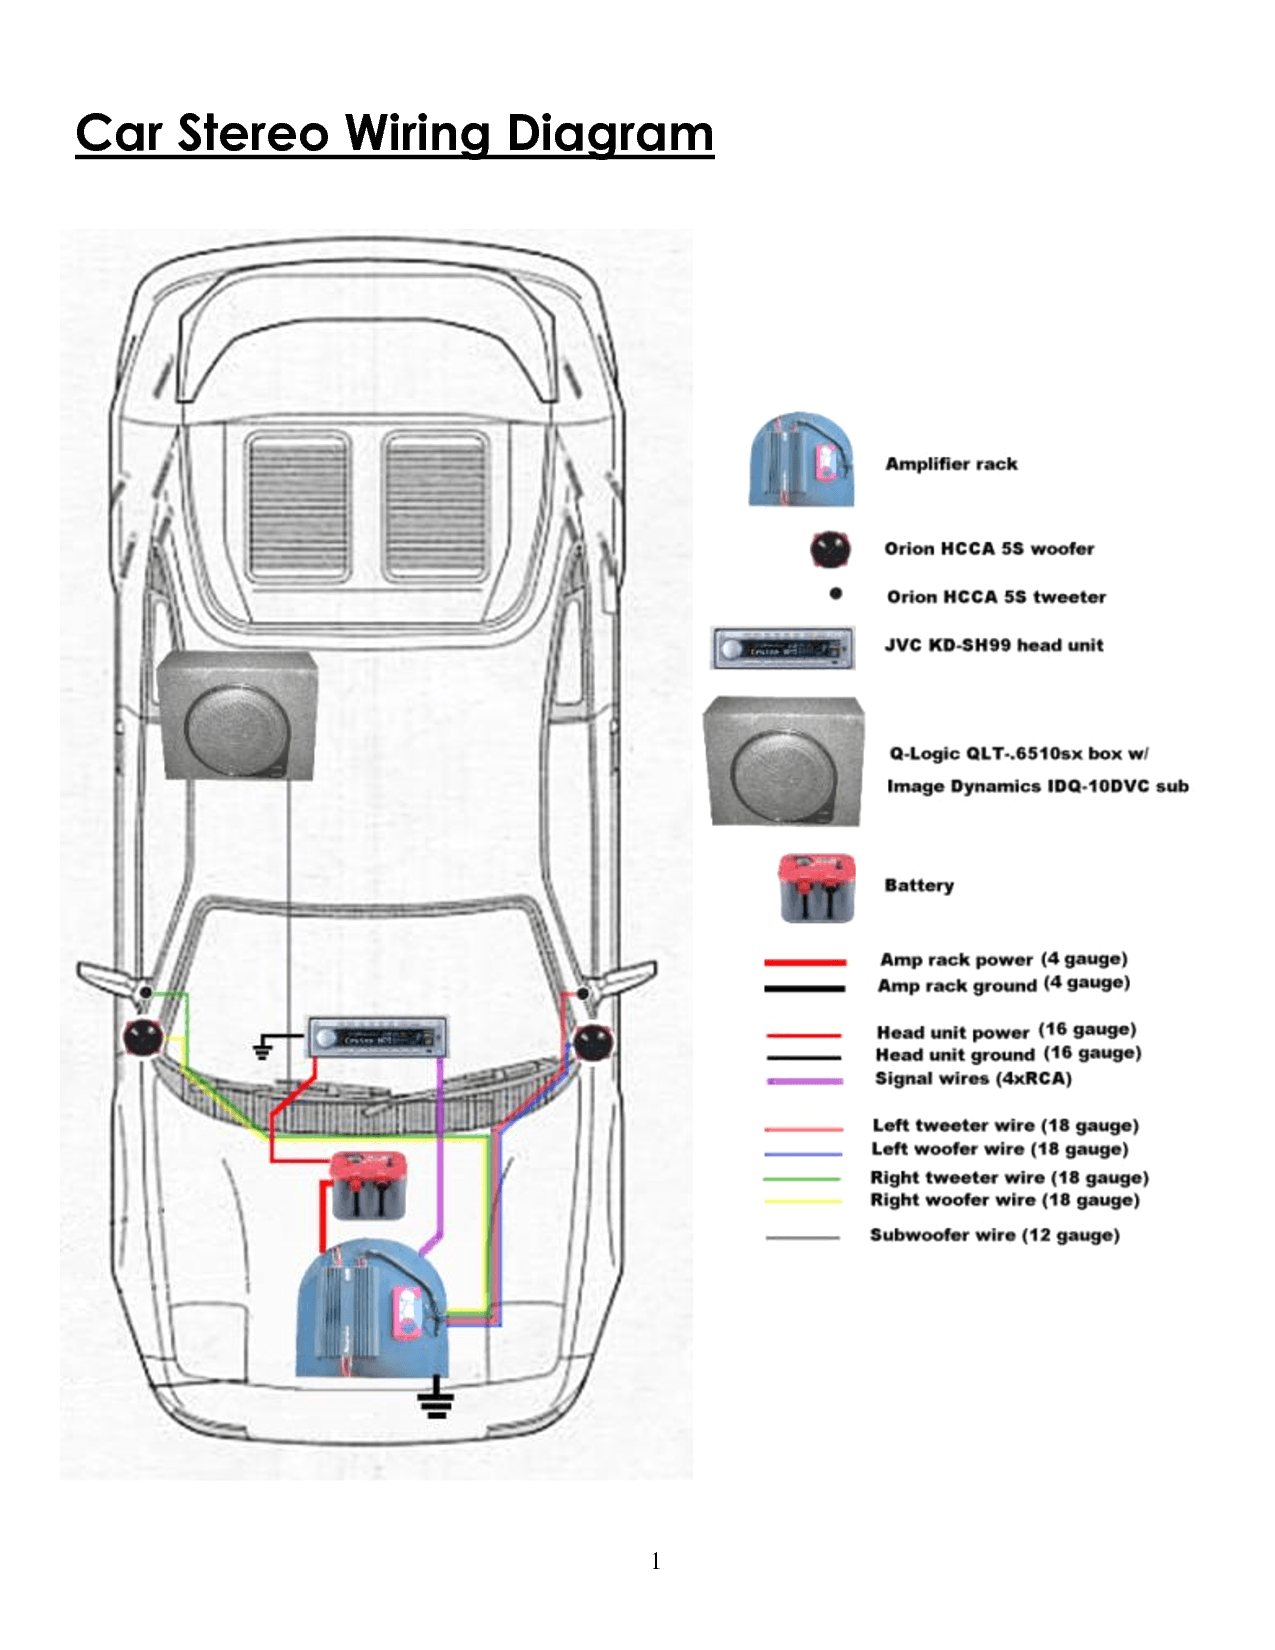 Wiring Diagram For A Car Stereo Amp And Subwoofer ...